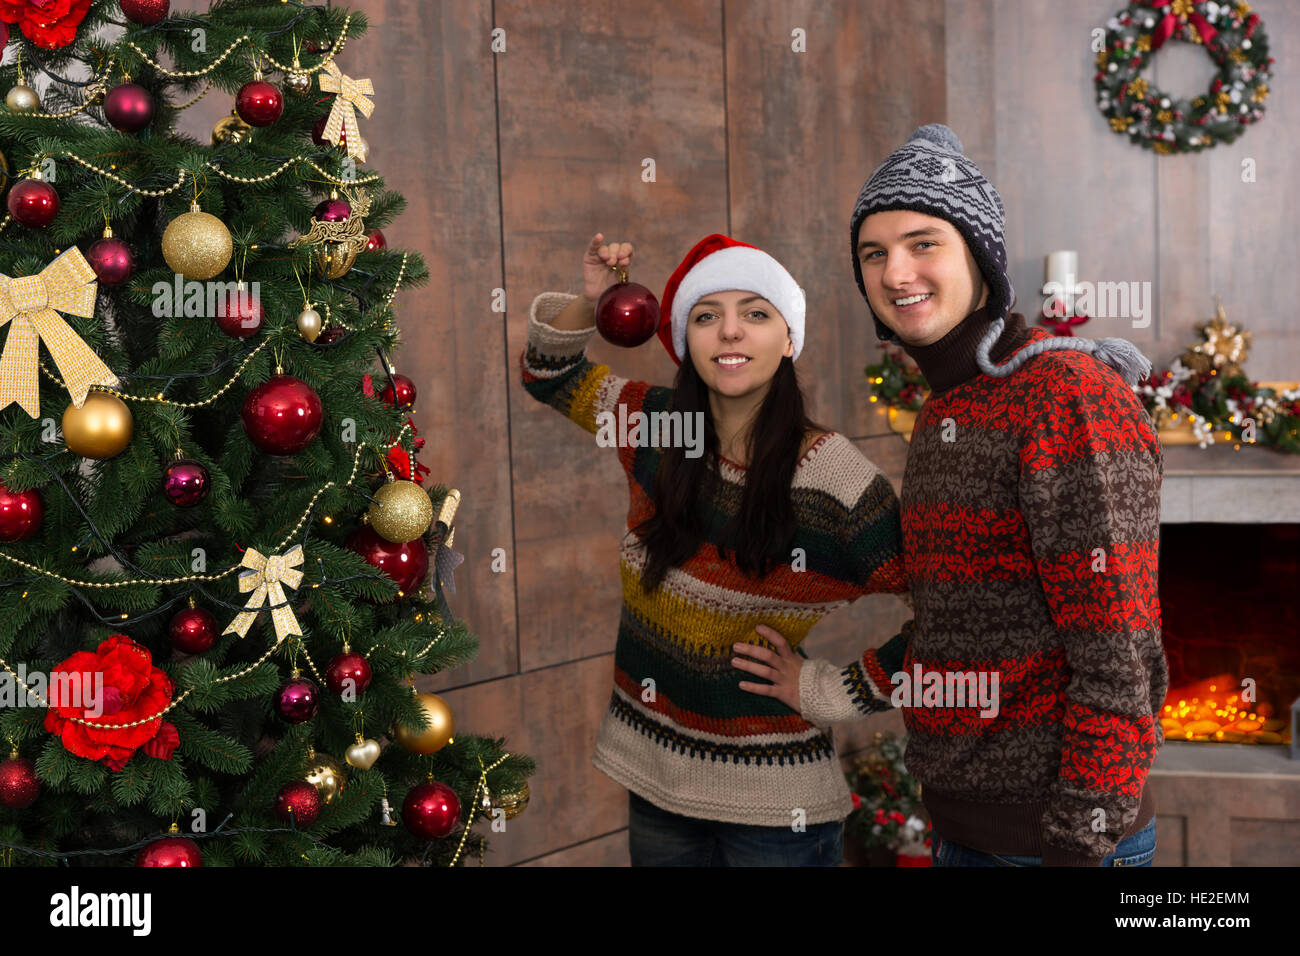 Young Smiling Couple Wearing Funny Hats Decorating For Christmas Hanging The Decorations And Ornaments On Large Tree In Their Living Ro